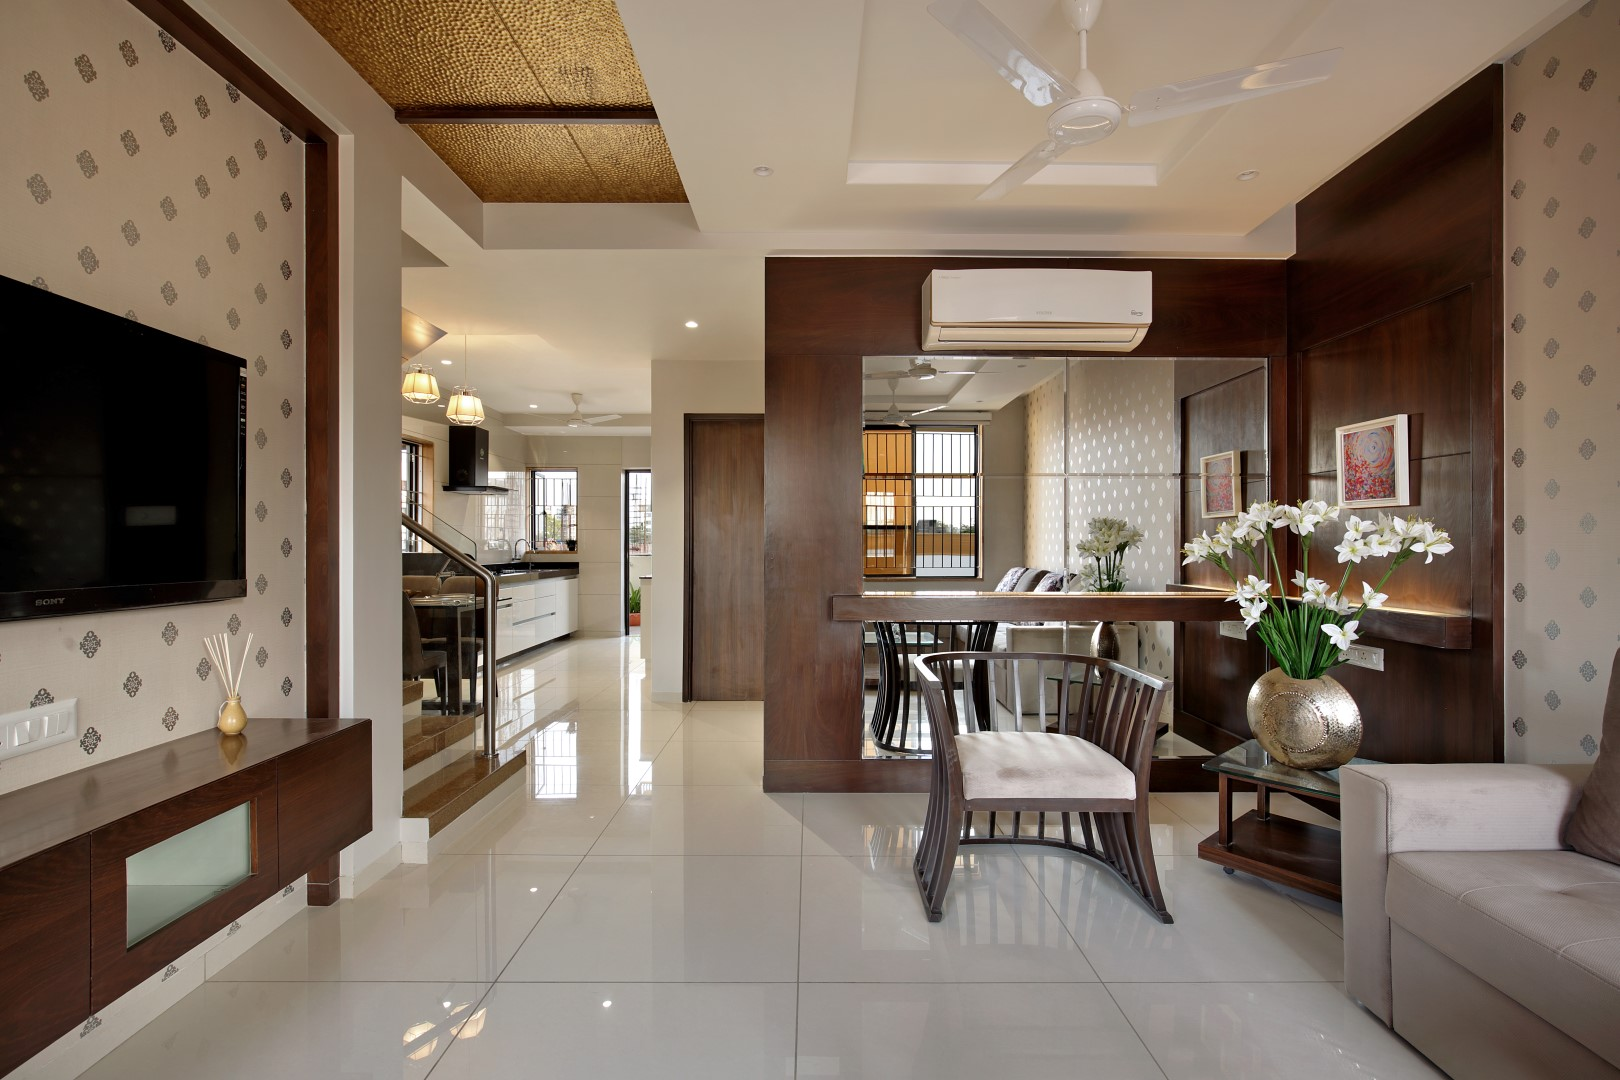 Villa interiors by sle villa interiors for alaswad villas vadodara